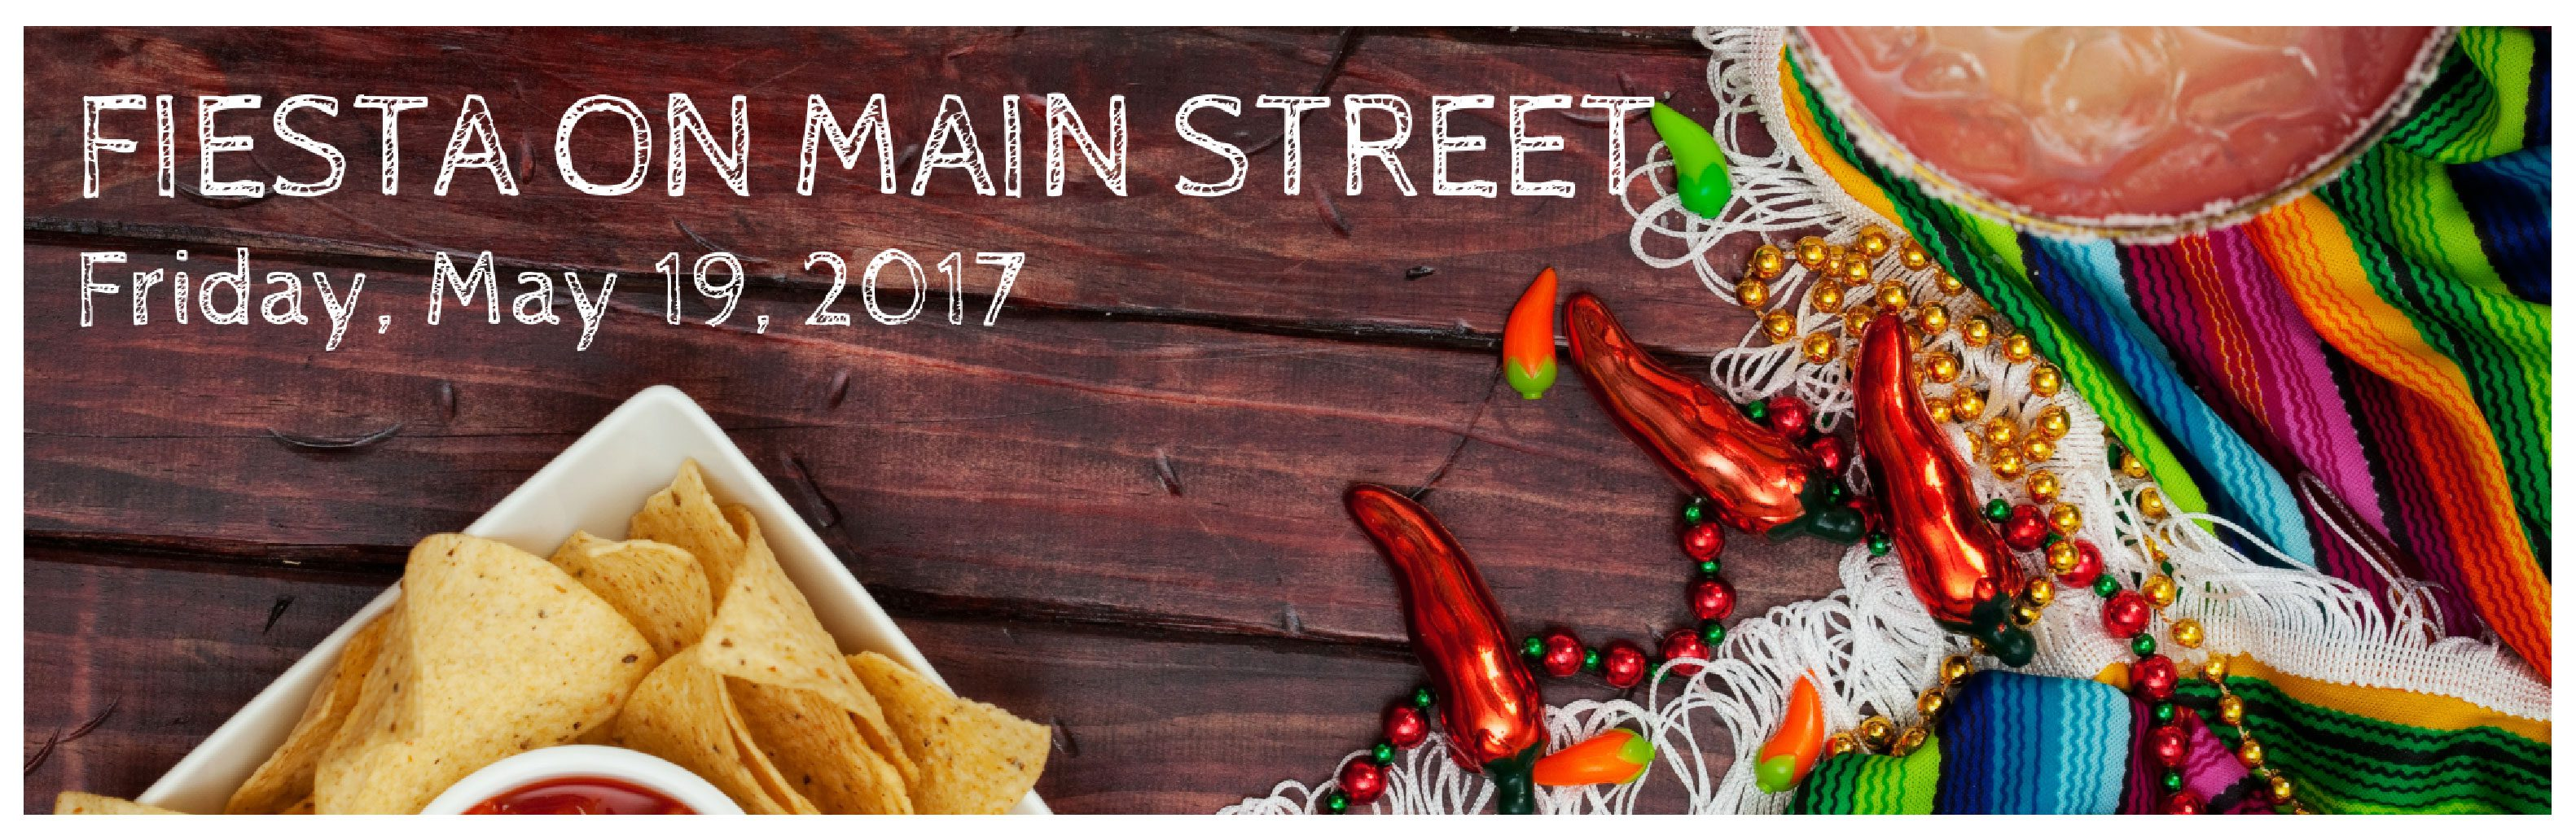 Fiesta-on-Main-Street---Webpage-Header---FY17-(1)